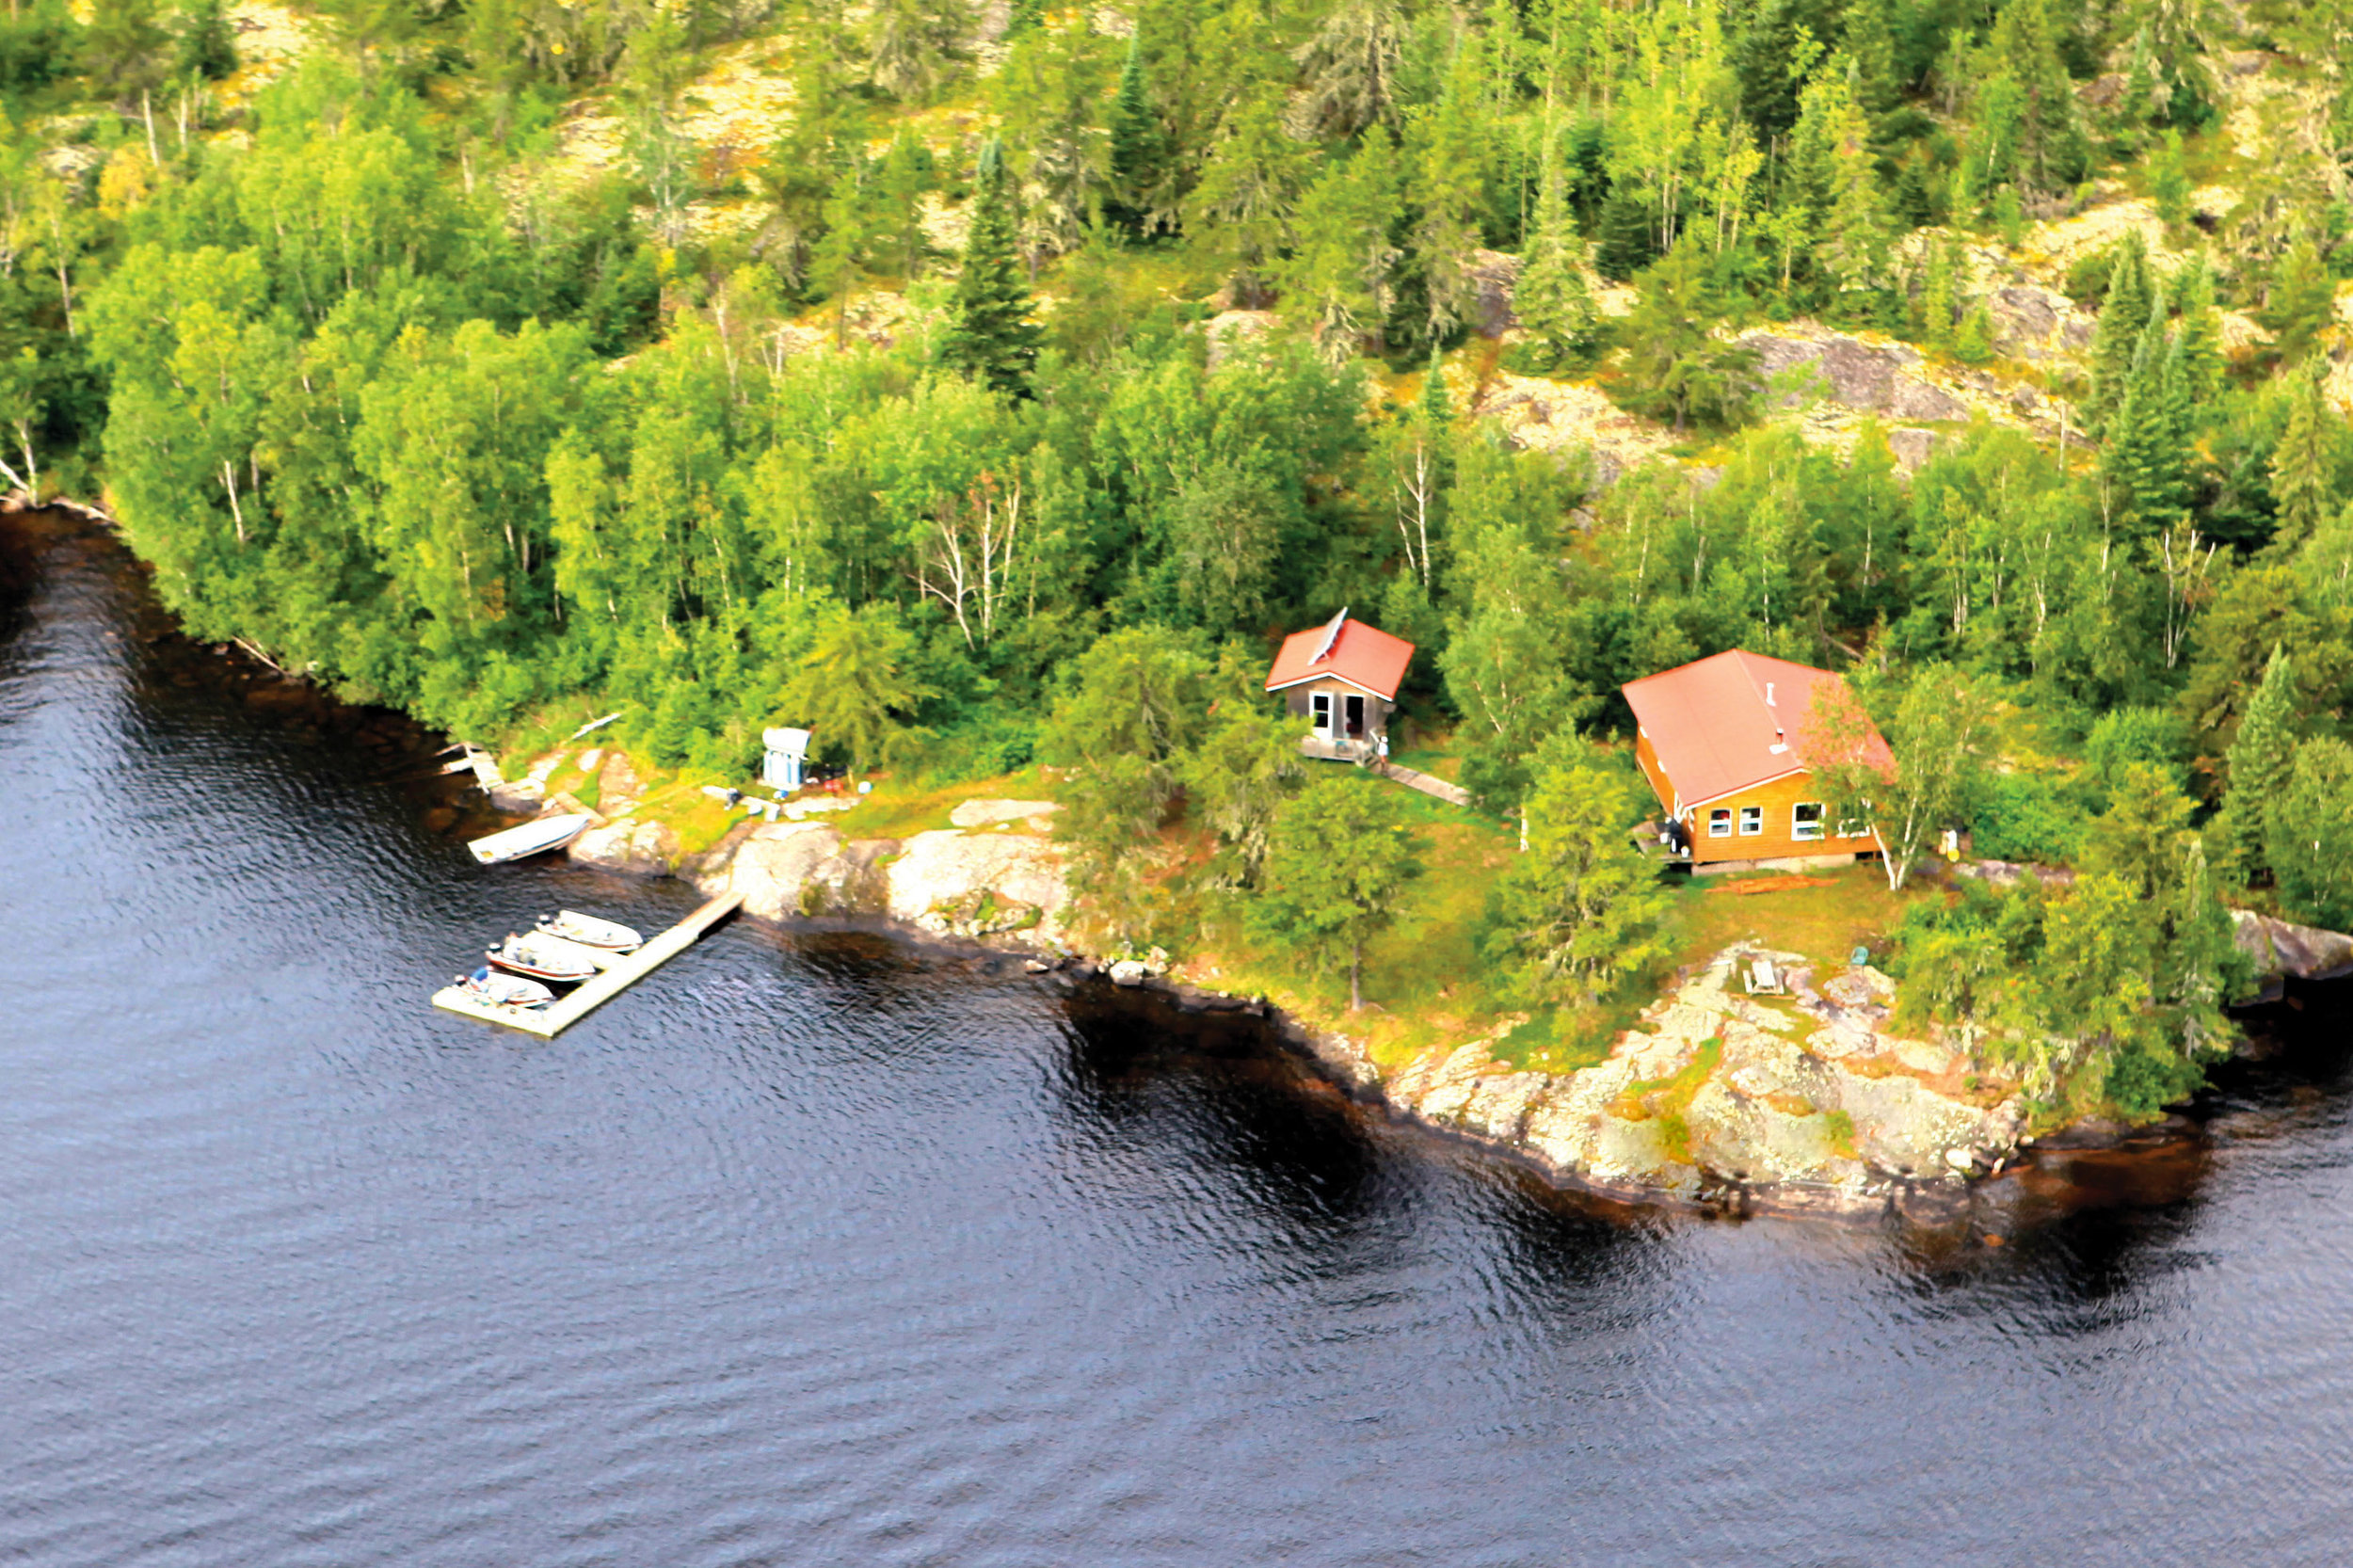 MODERN OUTPOSTS    Our outposts are located on exclusive lakes within 20 miles of our lodge.  The have great walleye and northern pike fishing plus modern, solar-powered cabins, quality equipment and can sleep 8 guests comfortably.   Learn about the outposts →